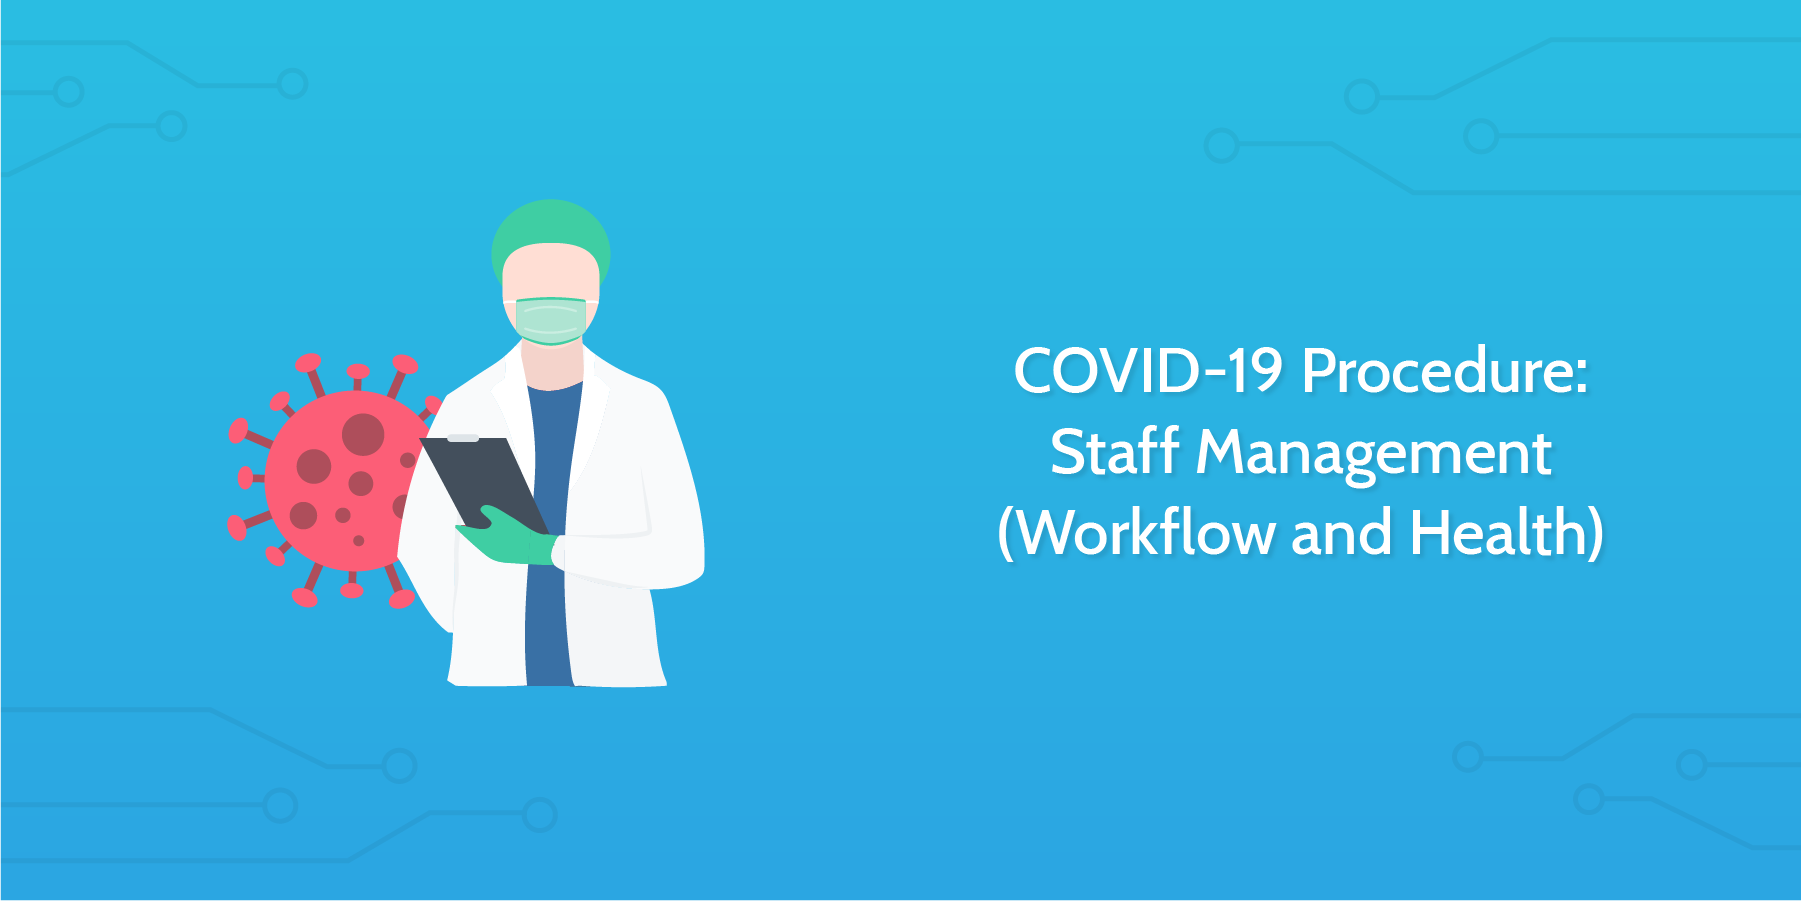 COVID-19 Procedure: Staff Management (Workflow and Health)